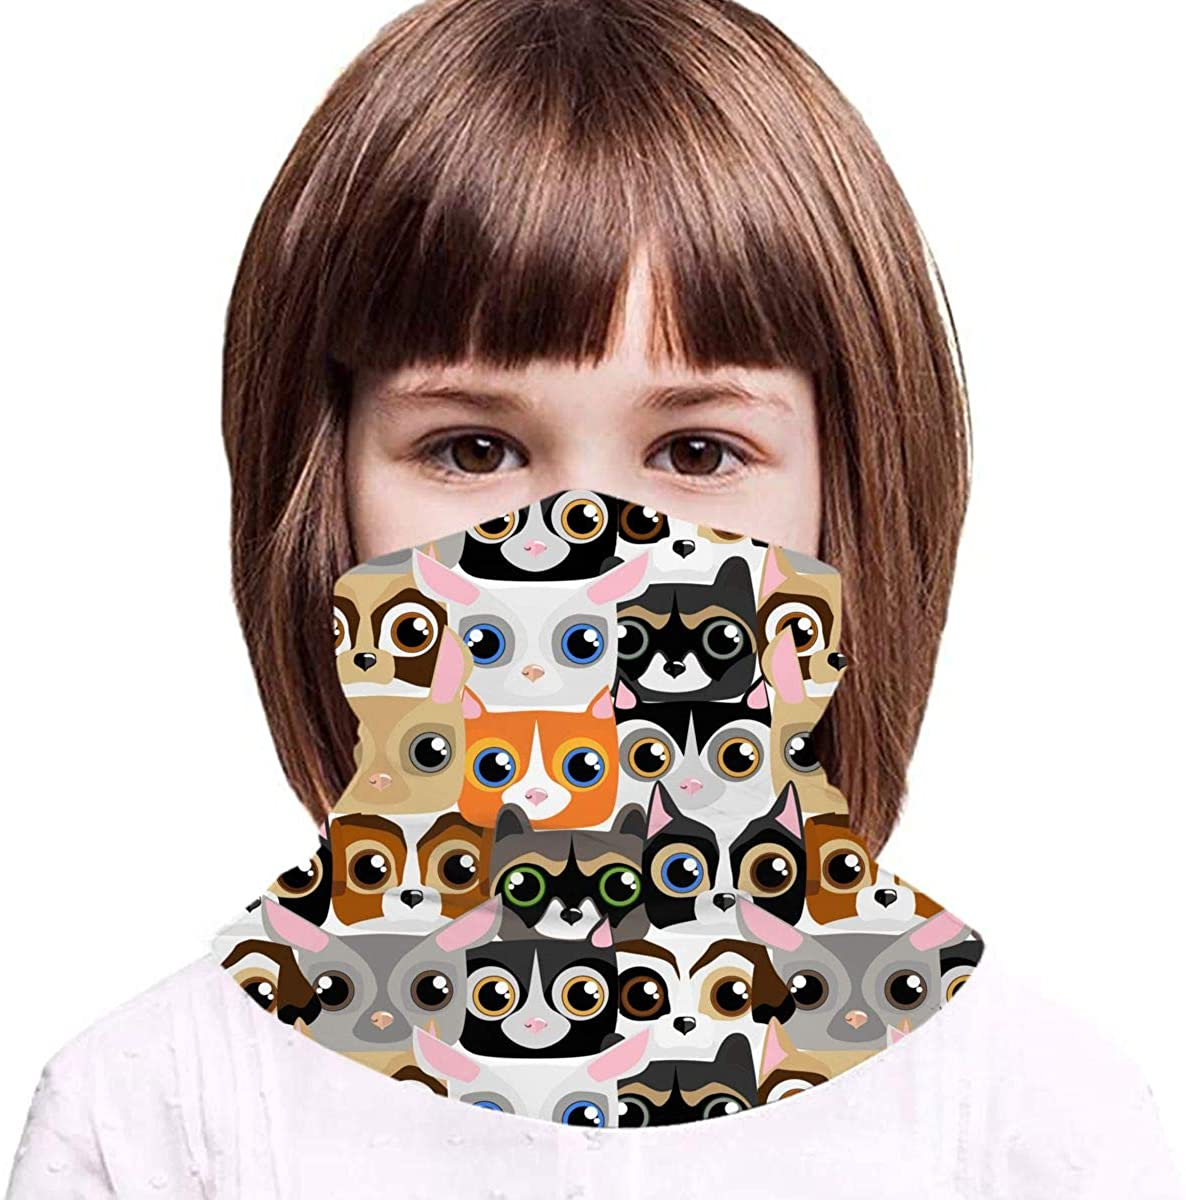 Little Cute and Funny Pets Neck Gaiter Balaclava Bandana Headwear Cooling Scarf Variety Face Towel